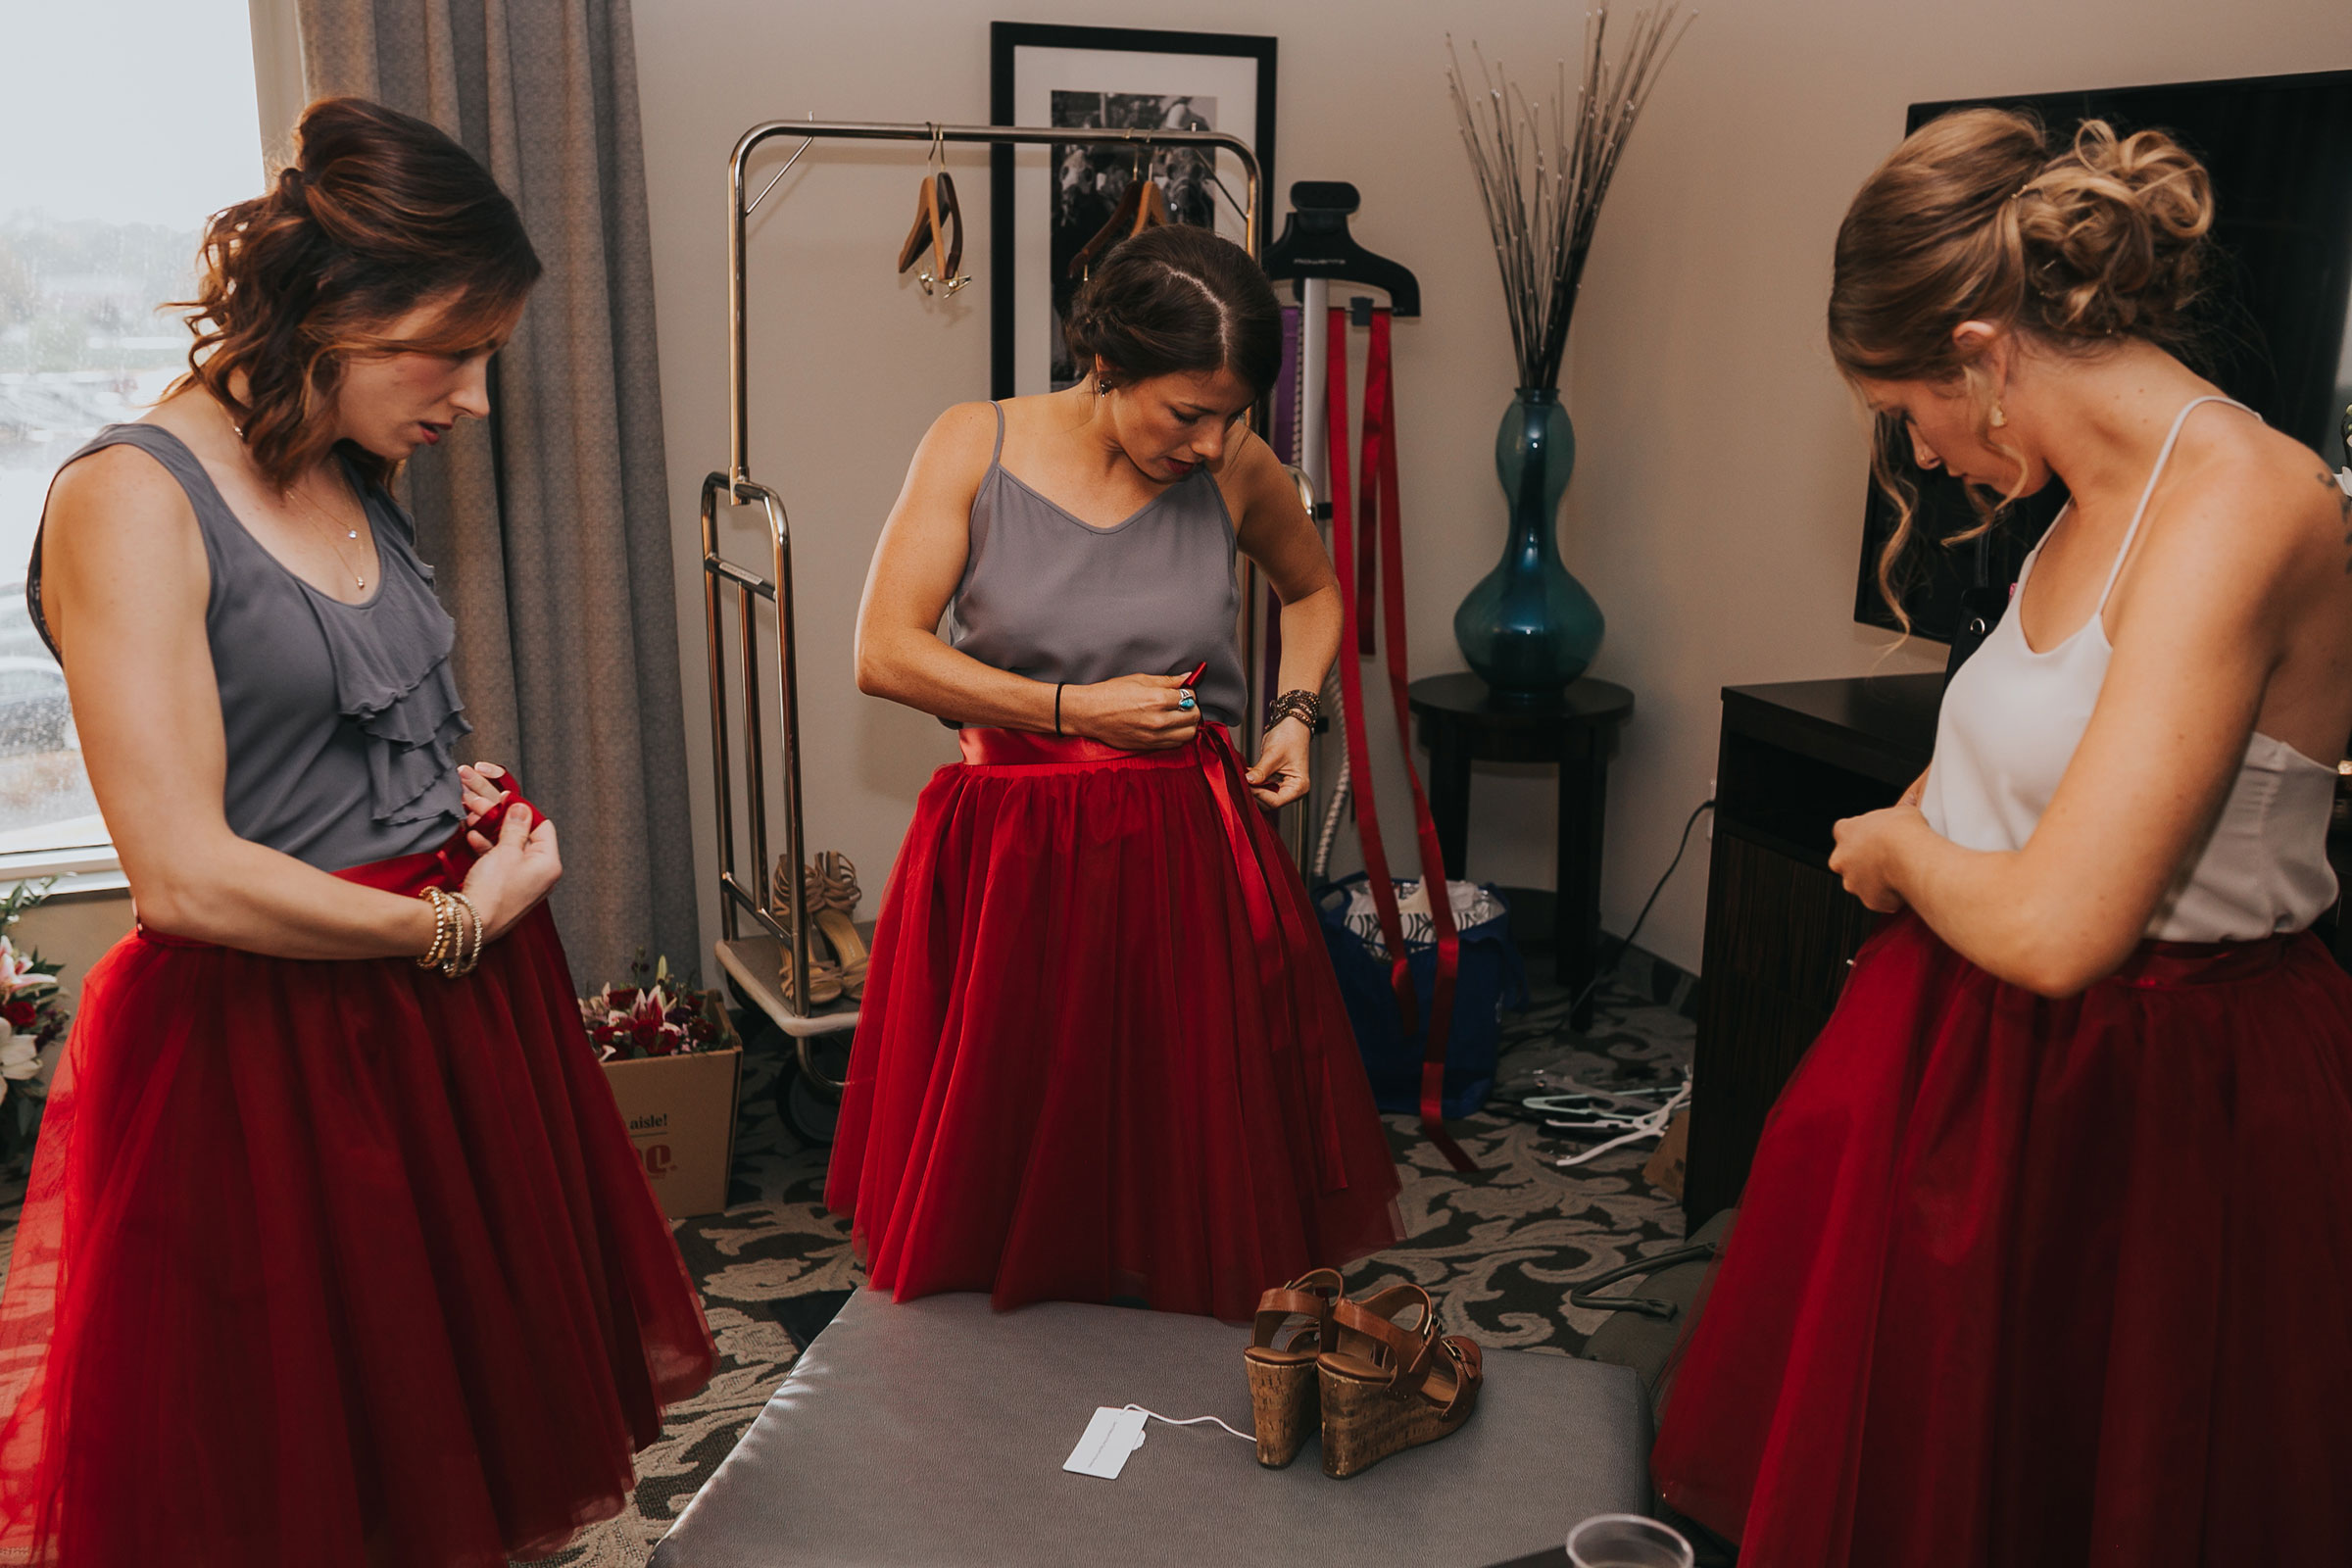 bridesmaids-putting-skirts-on-prairie-meadows-desmoines-iowa-raelyn-ramey-photography.jpg